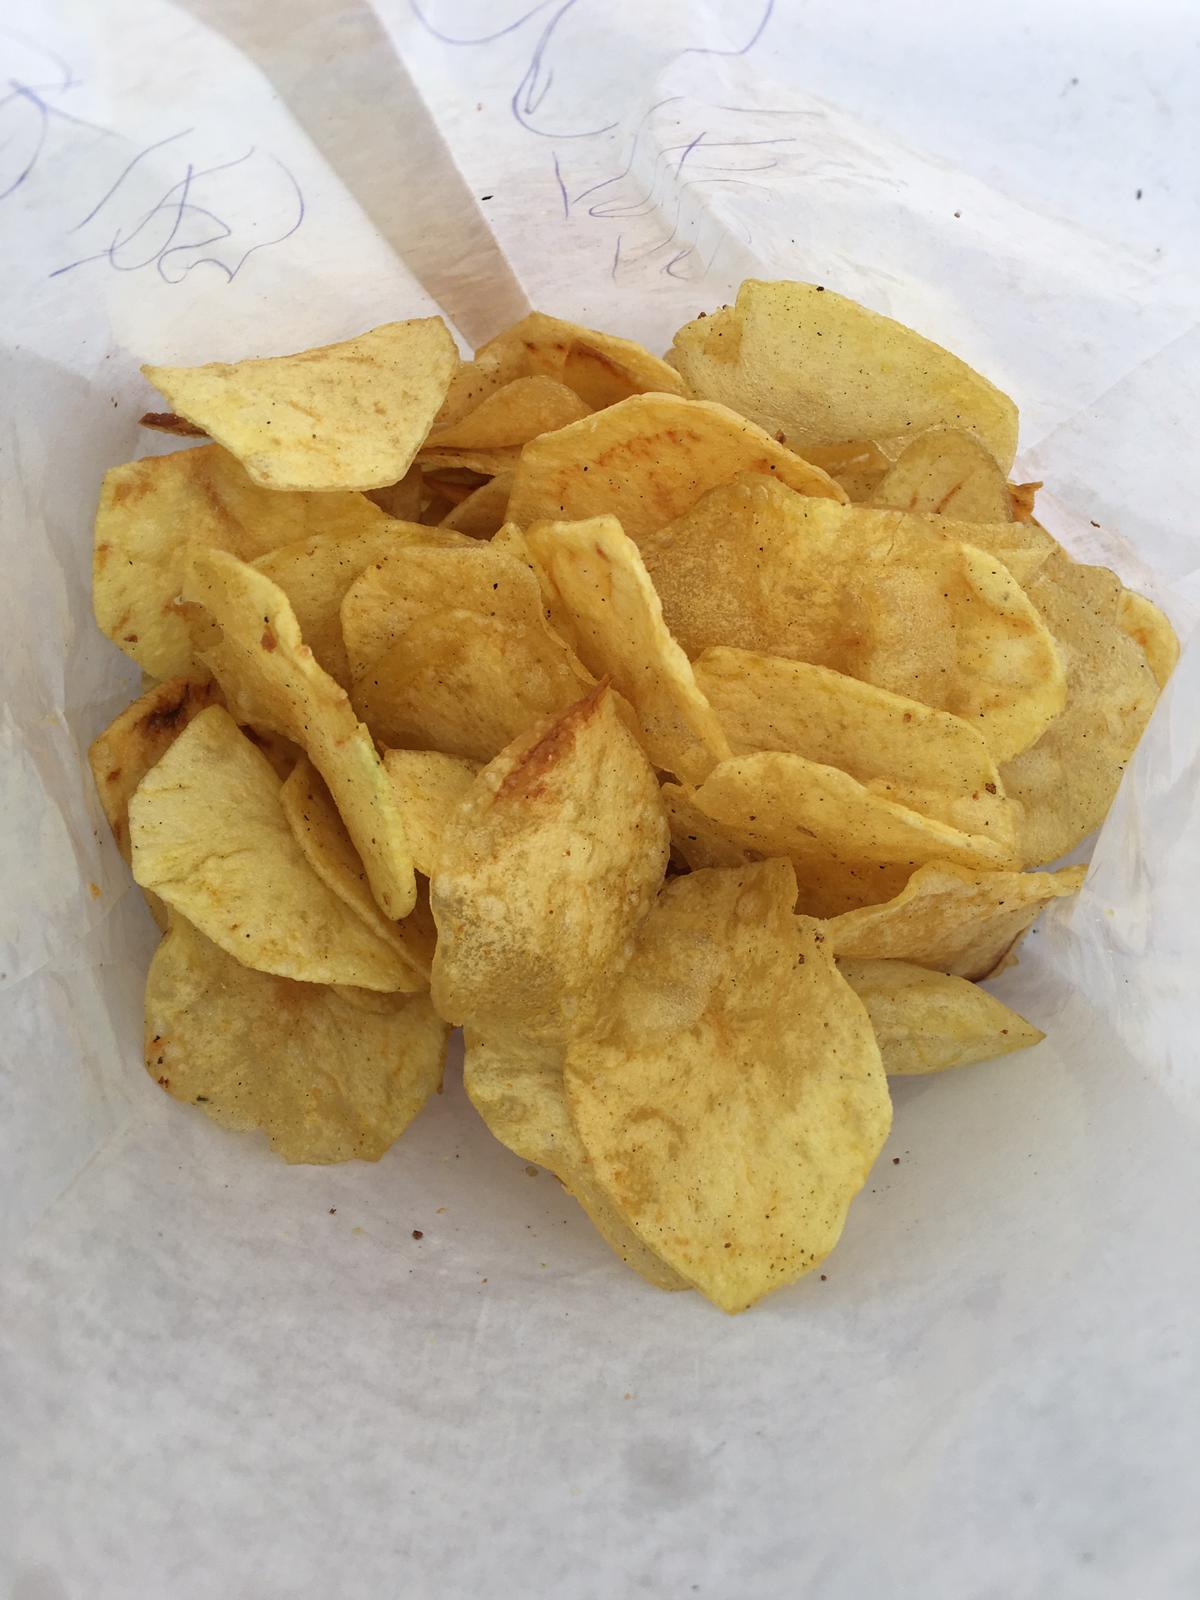 Our favorite fresh made potato chips